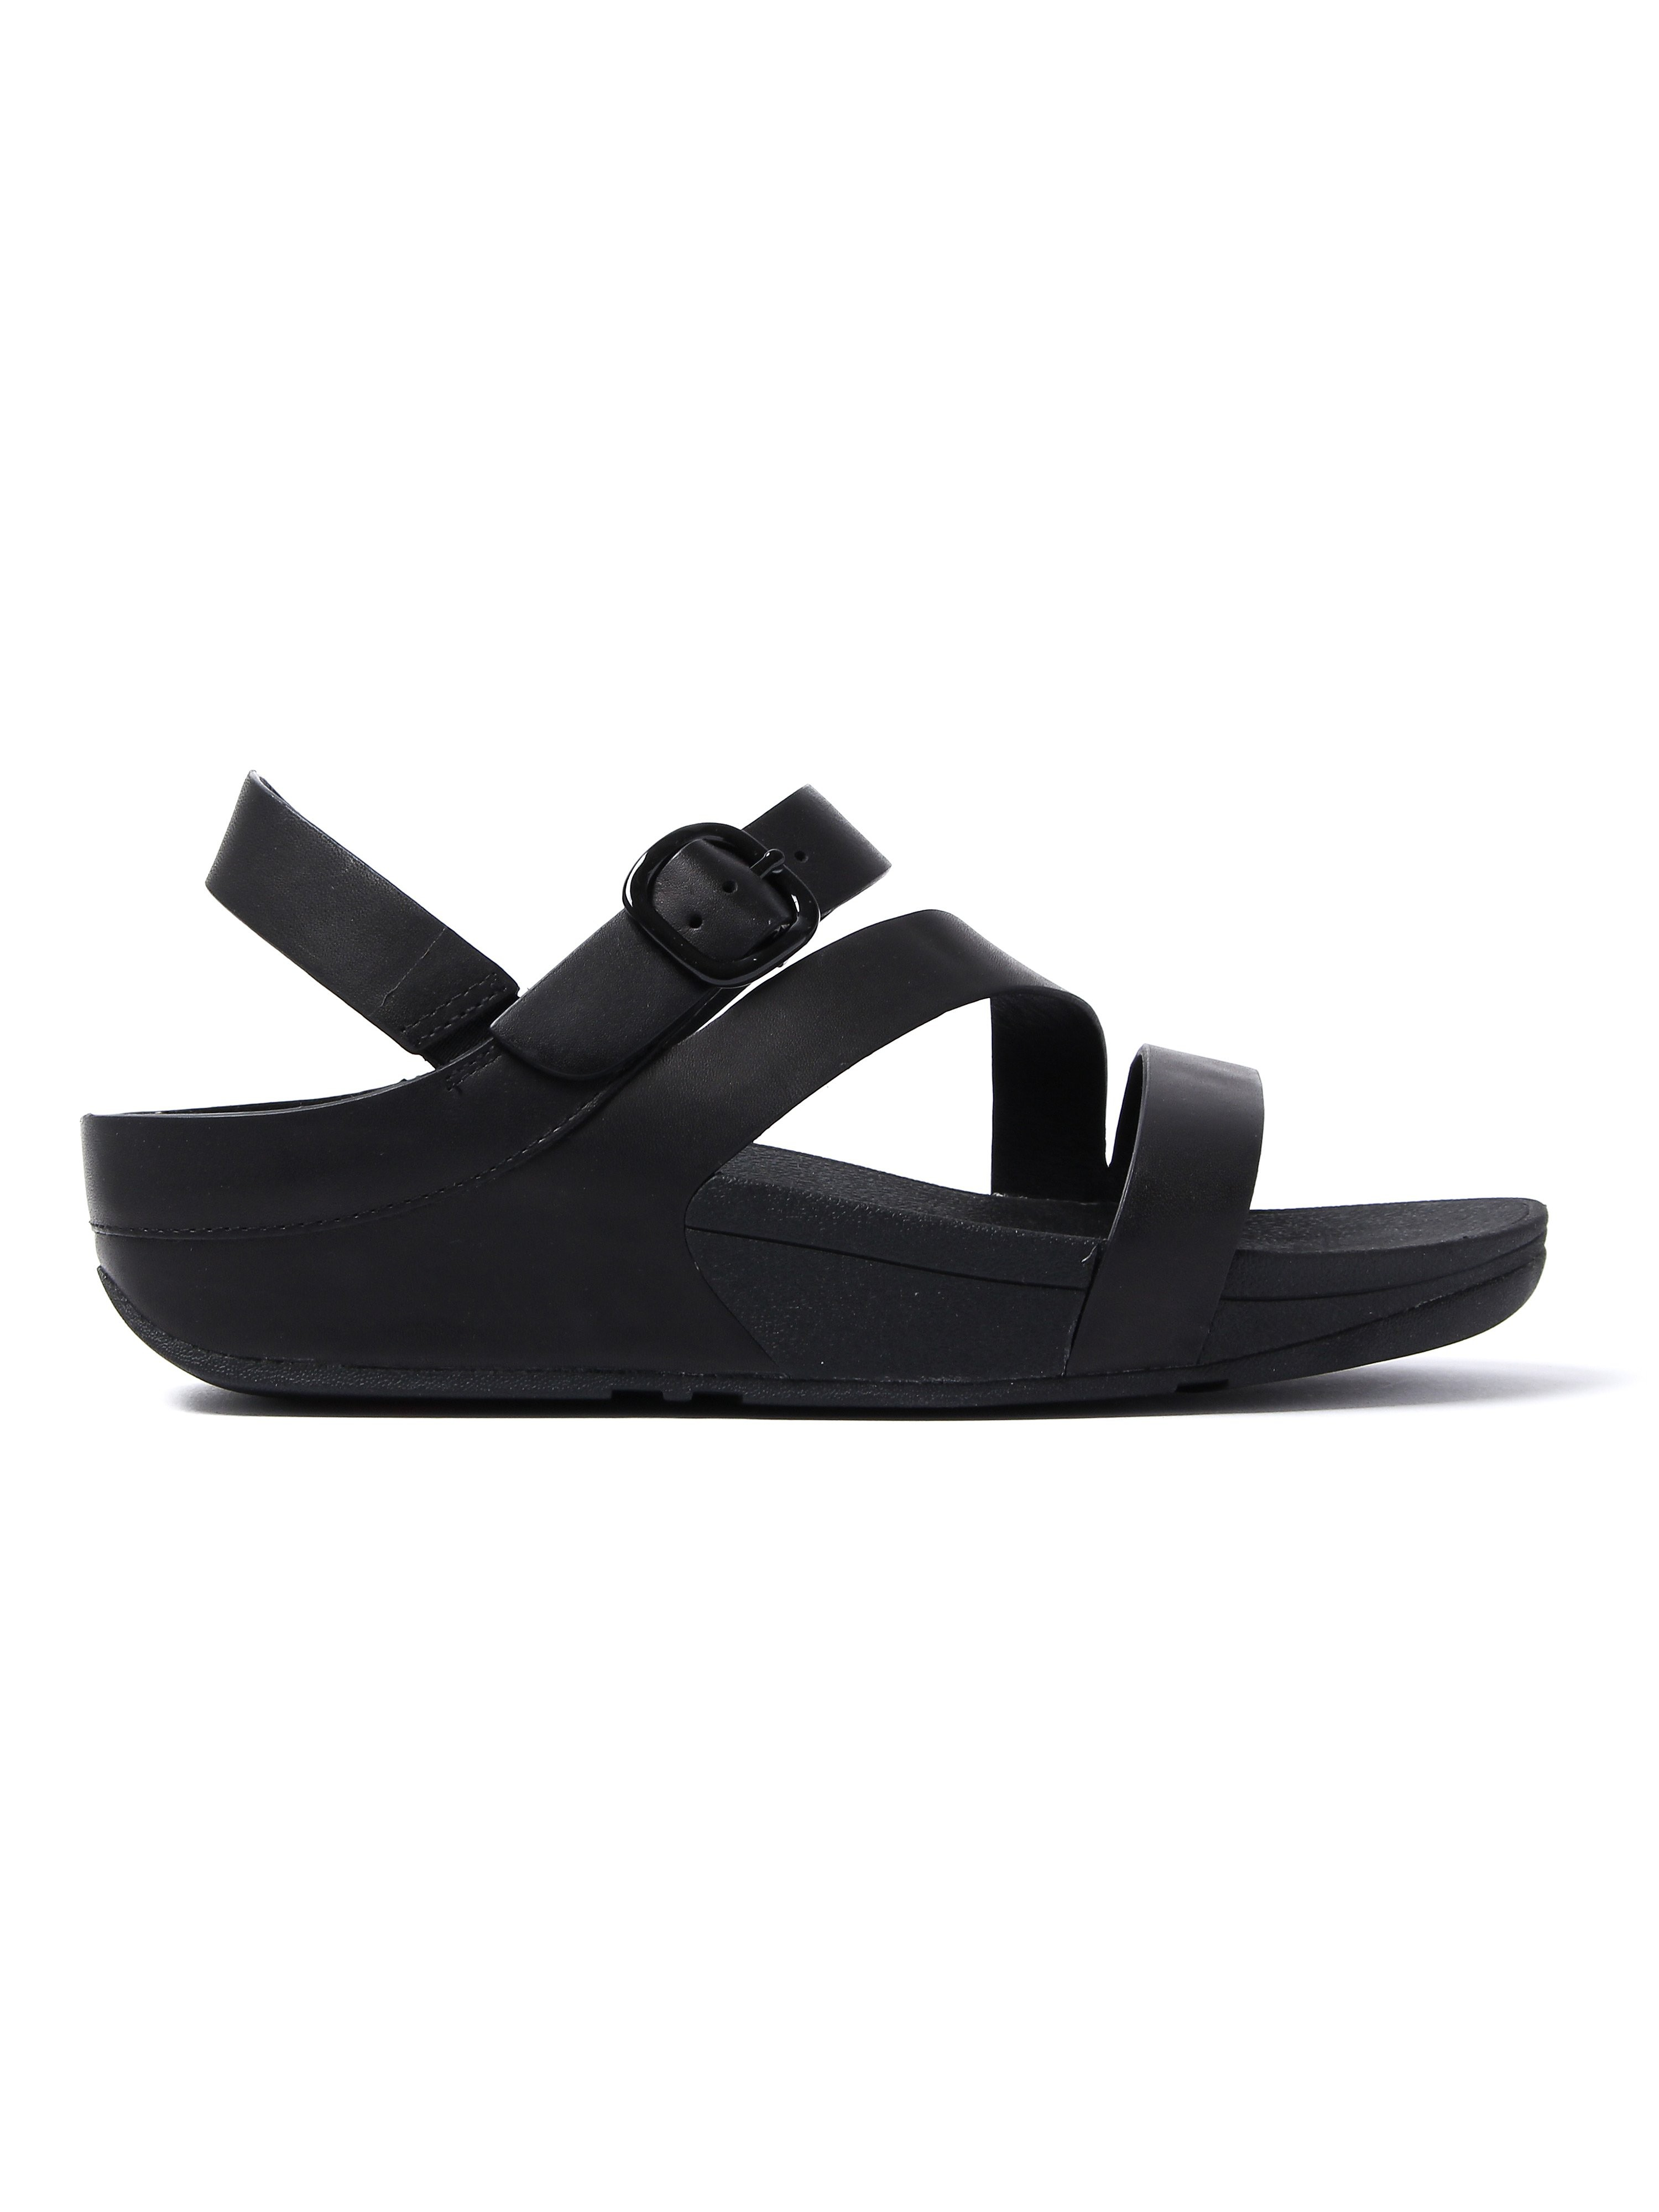 FitFlop Women's The Skinny Z-Cross Sandals - Black Leather